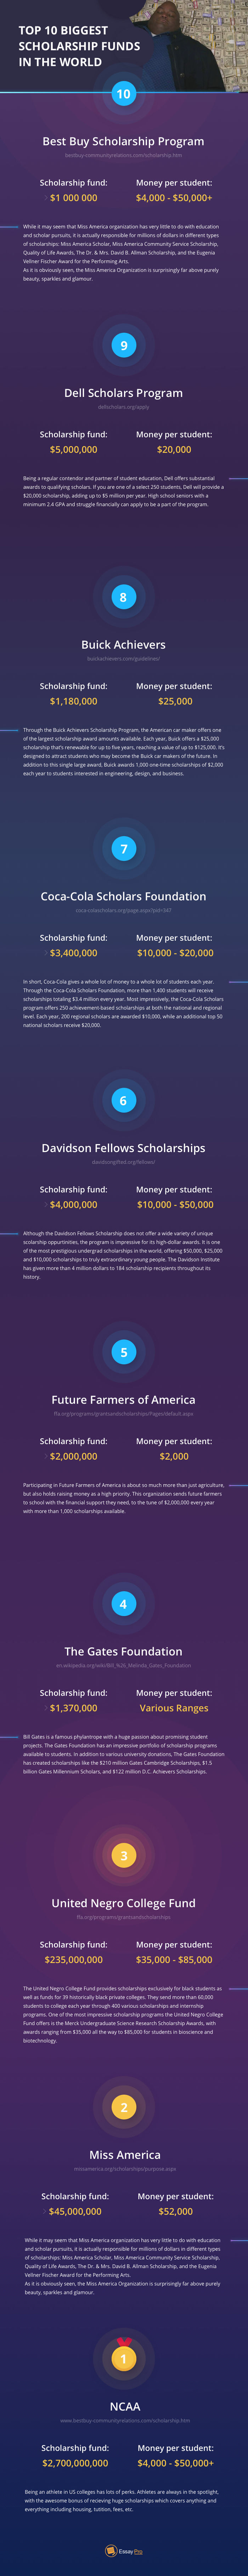 We've Done An Infographic About 10 Biggest Scholarship Funds In The World